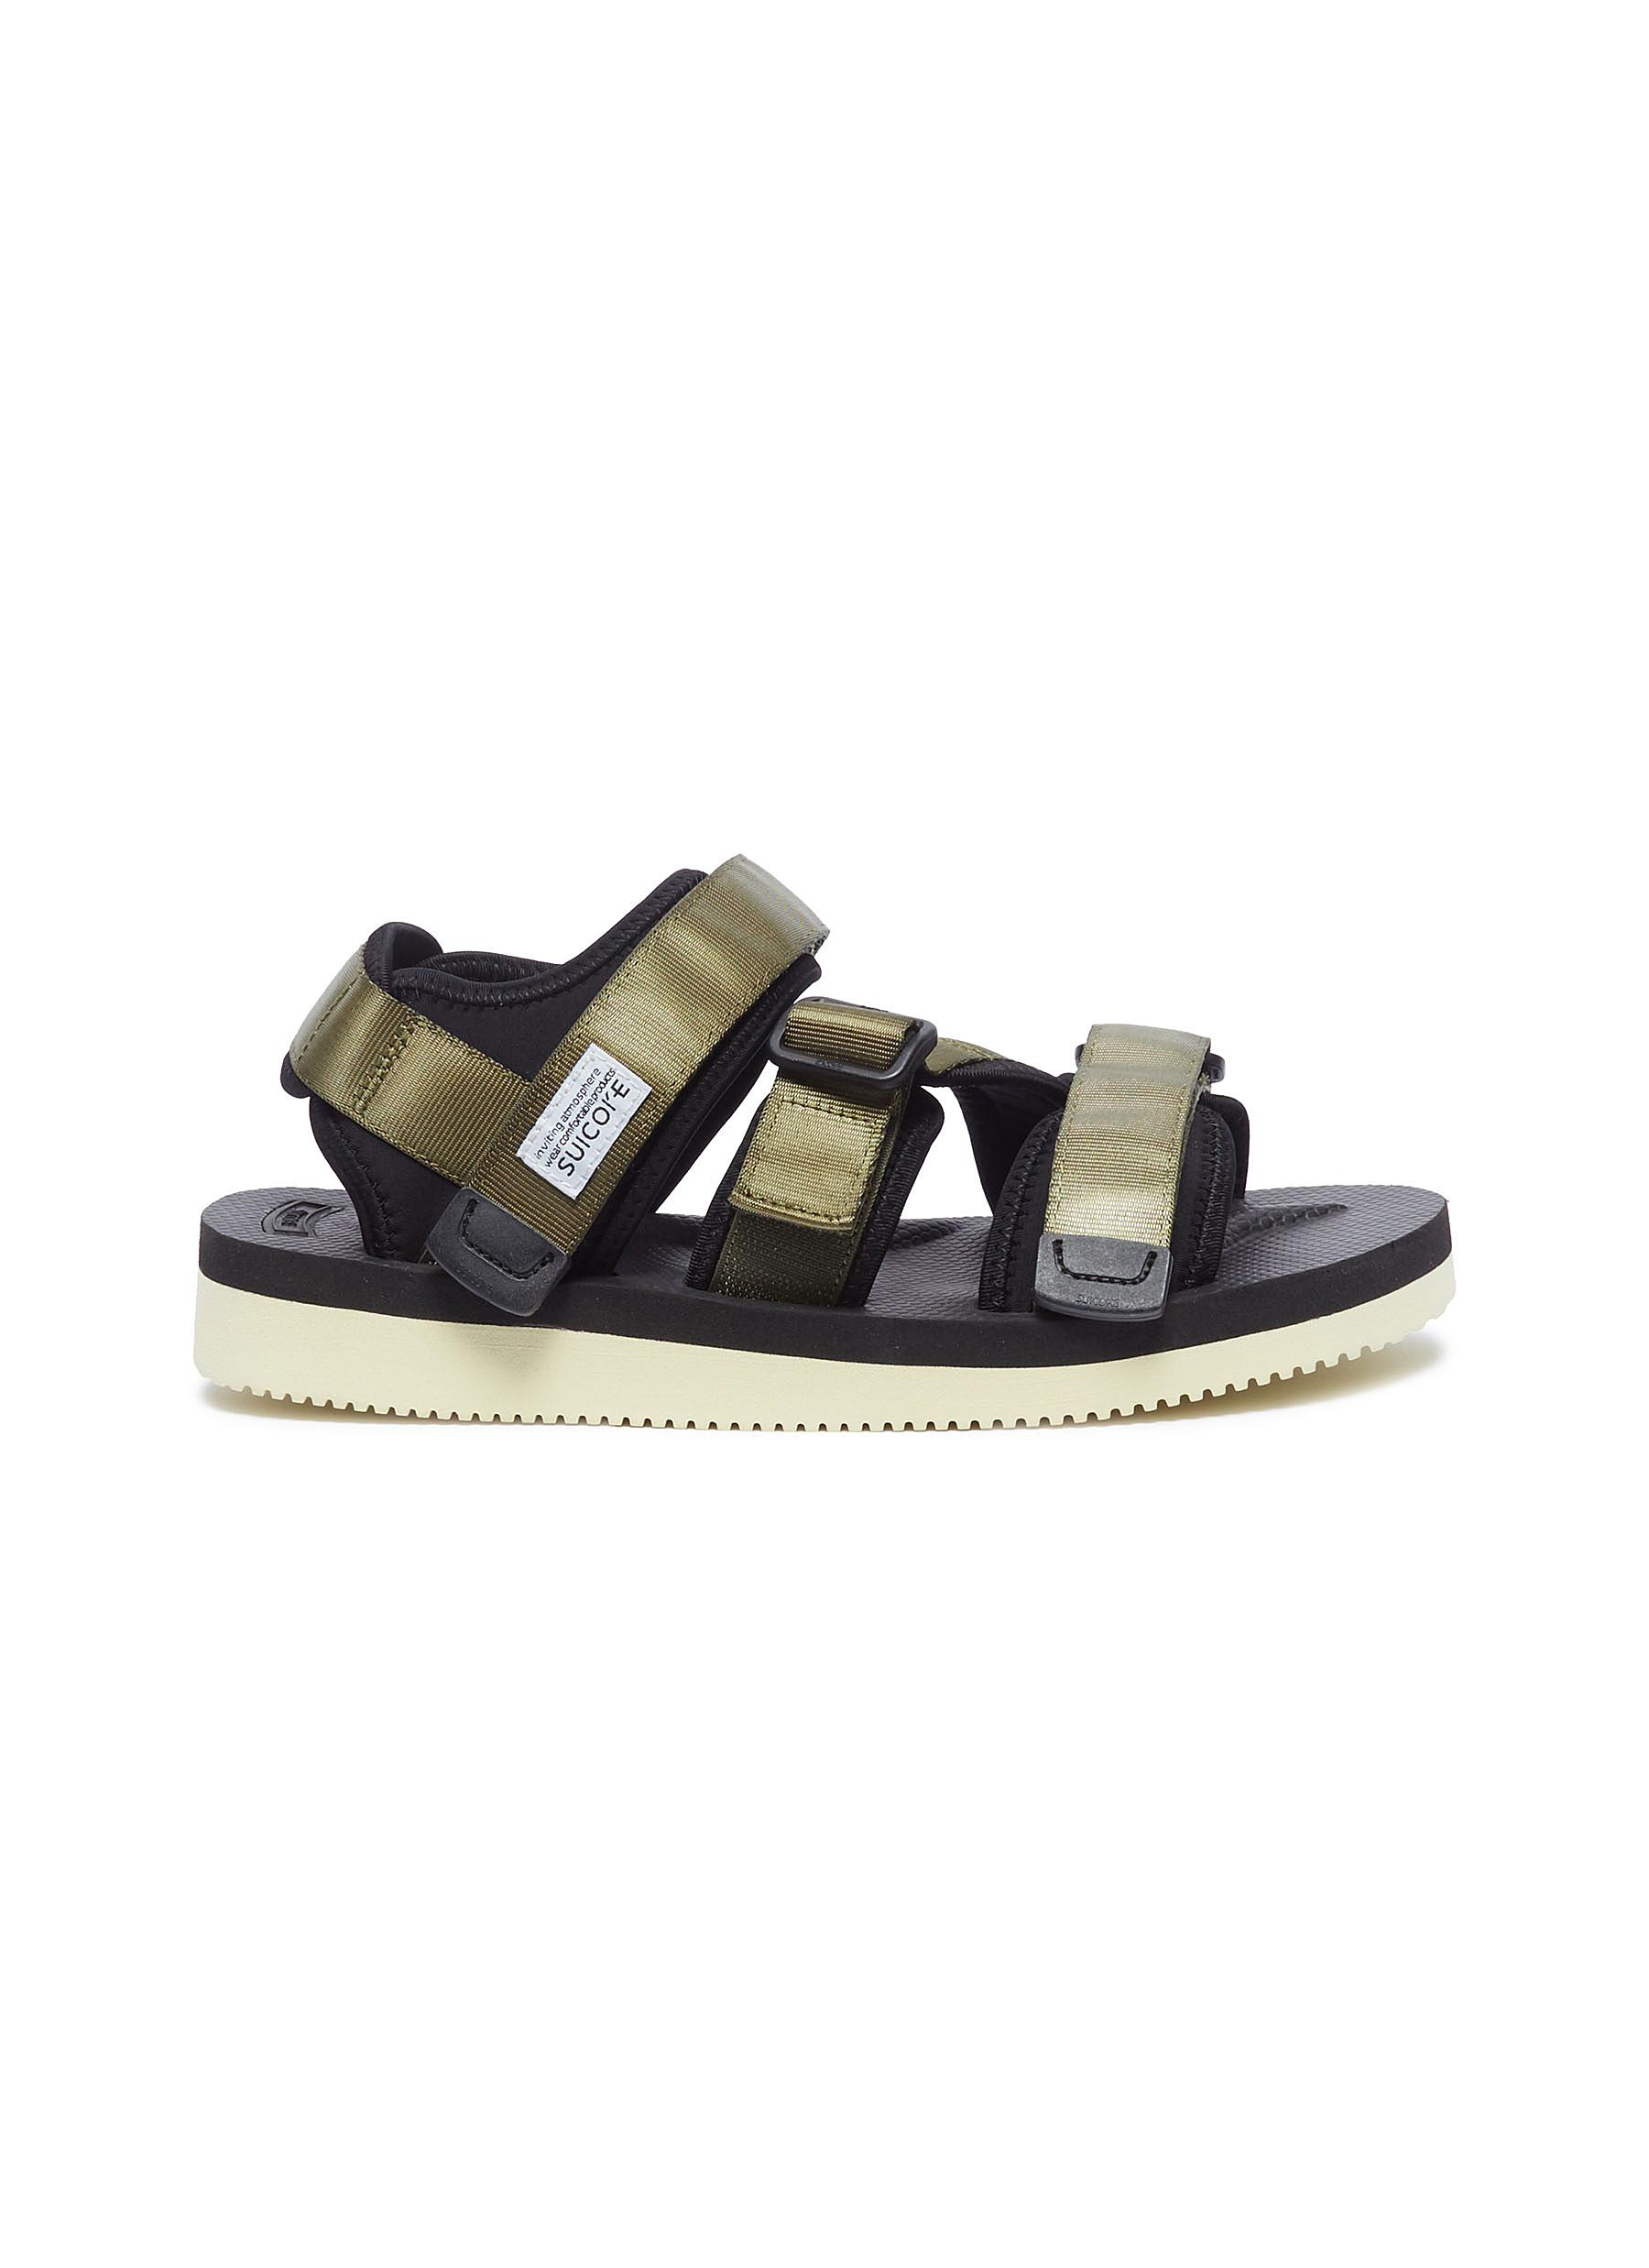 Kisee-V strappy sandals by SUICOKE